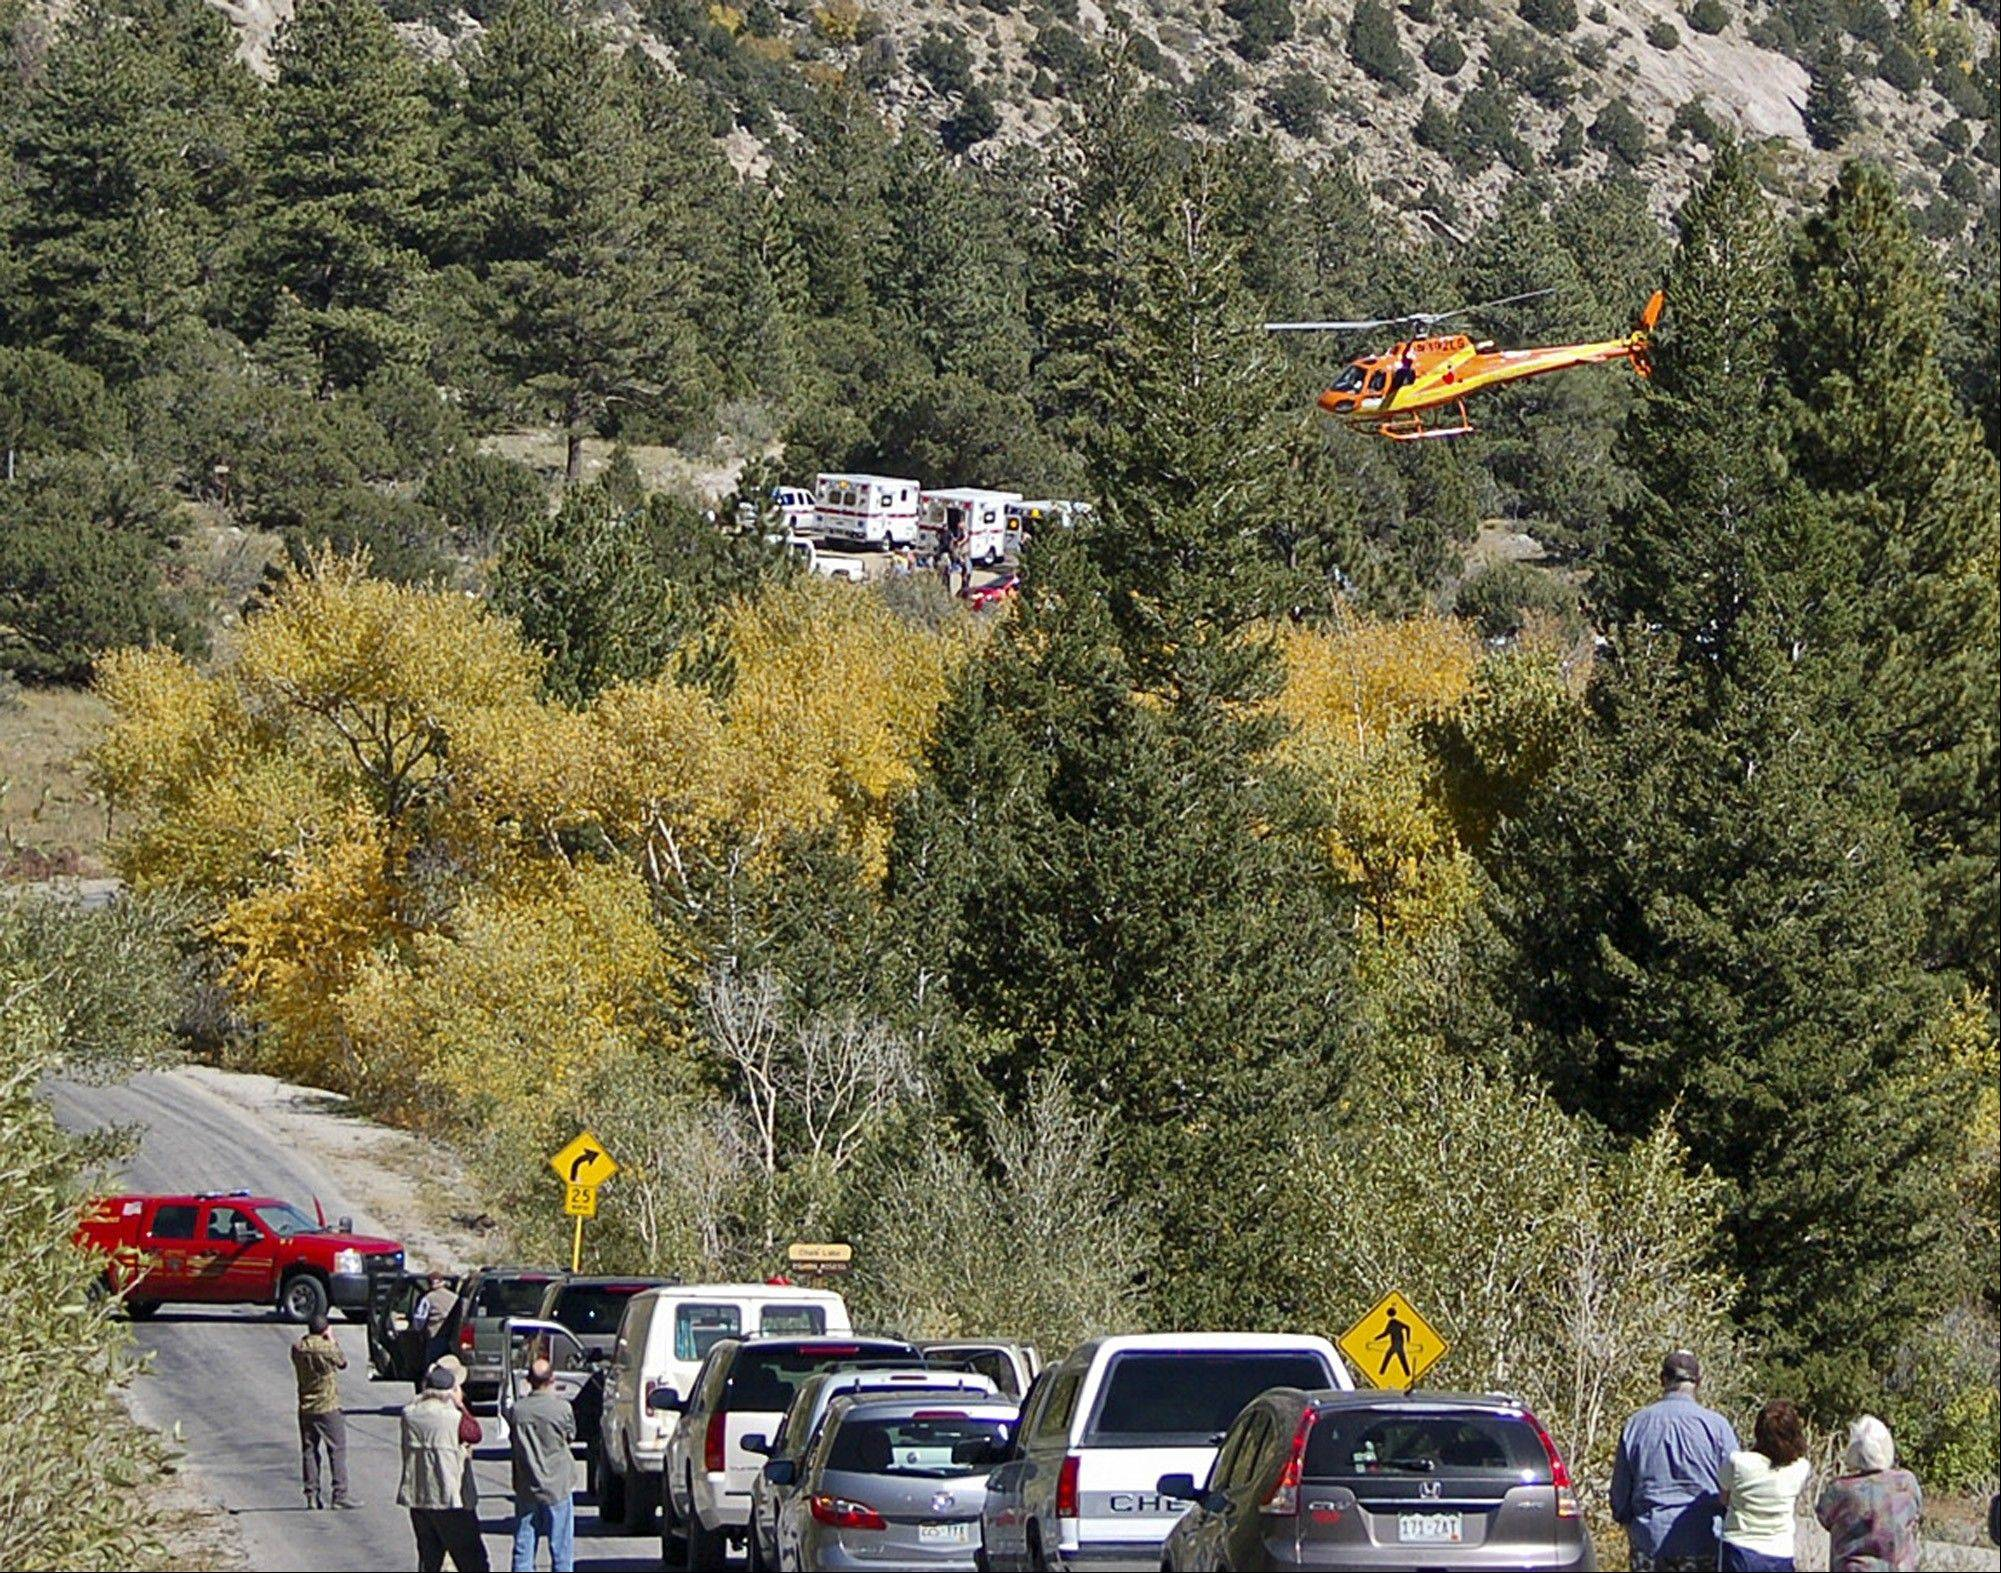 A Flight for Life Helicopter rises above backed-up traffic Monday in south-central Colorado after roads were closed to permit emergency personnel to get to hikers trapped by a rock slide.